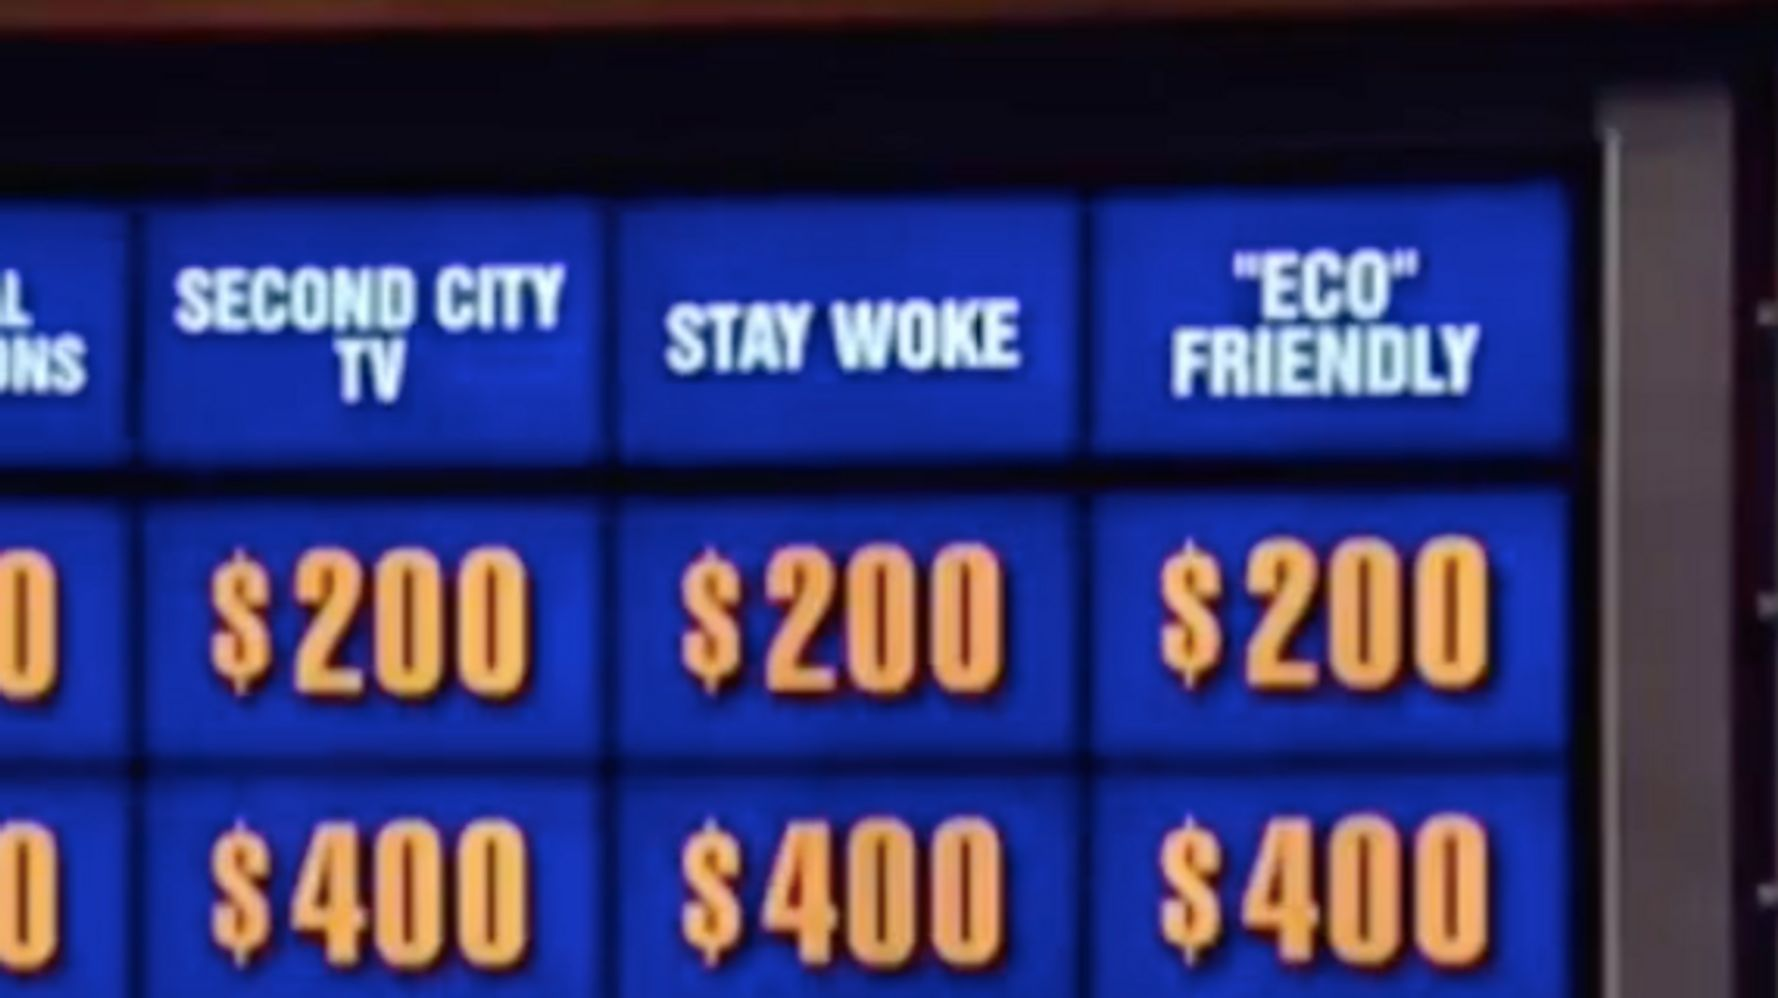 Jeopardy!' Had A 'Stay Woke' Category But It Wasn't What You